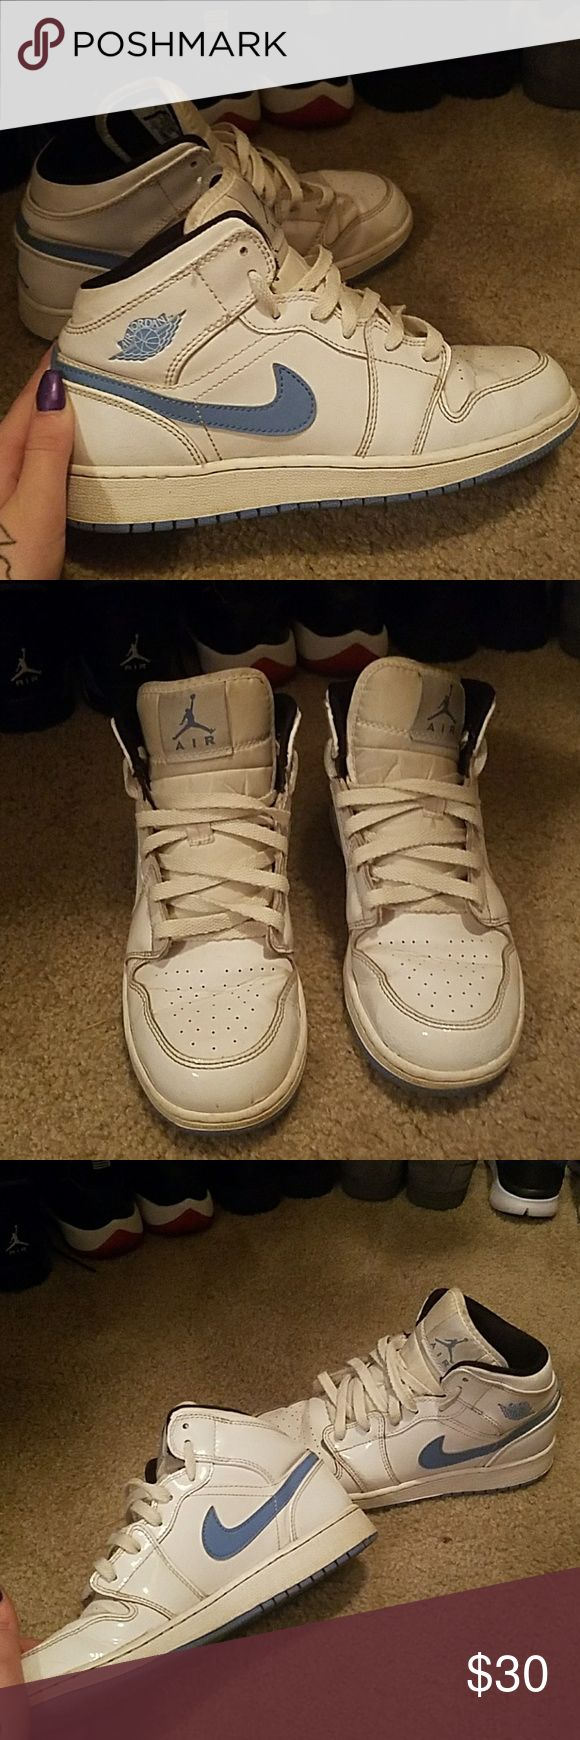 Air Jordan Retro 1s white and baby blue jordans. 100% authentic. fits a 6 1/2 or 7 in womens. in good condition Jordan Shoes Sneakers